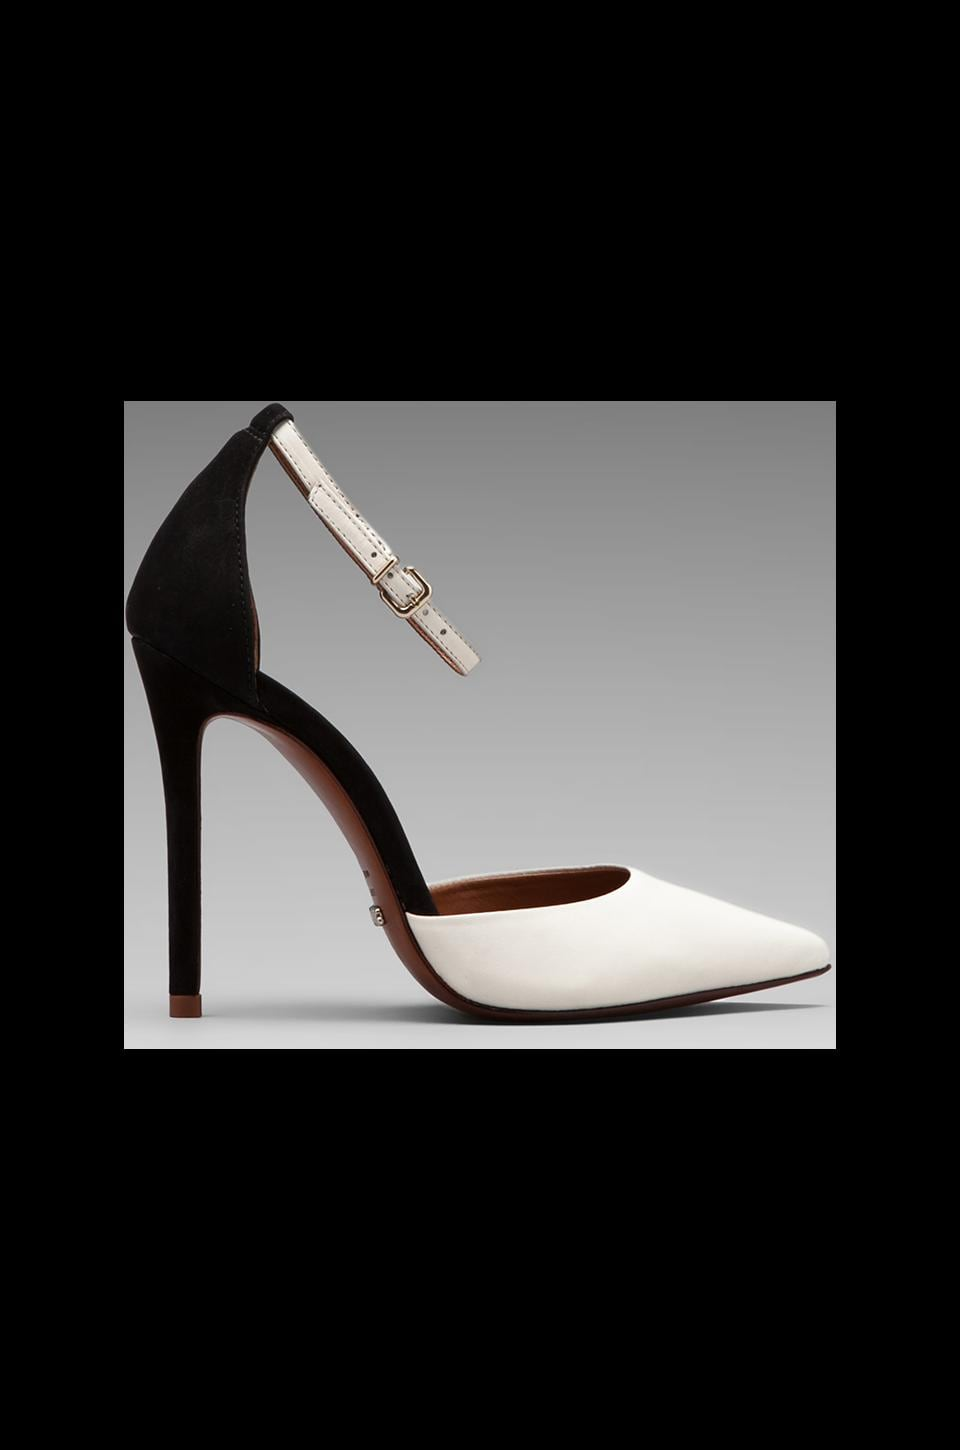 Schutz Irma Colorblock Pump in Black/White